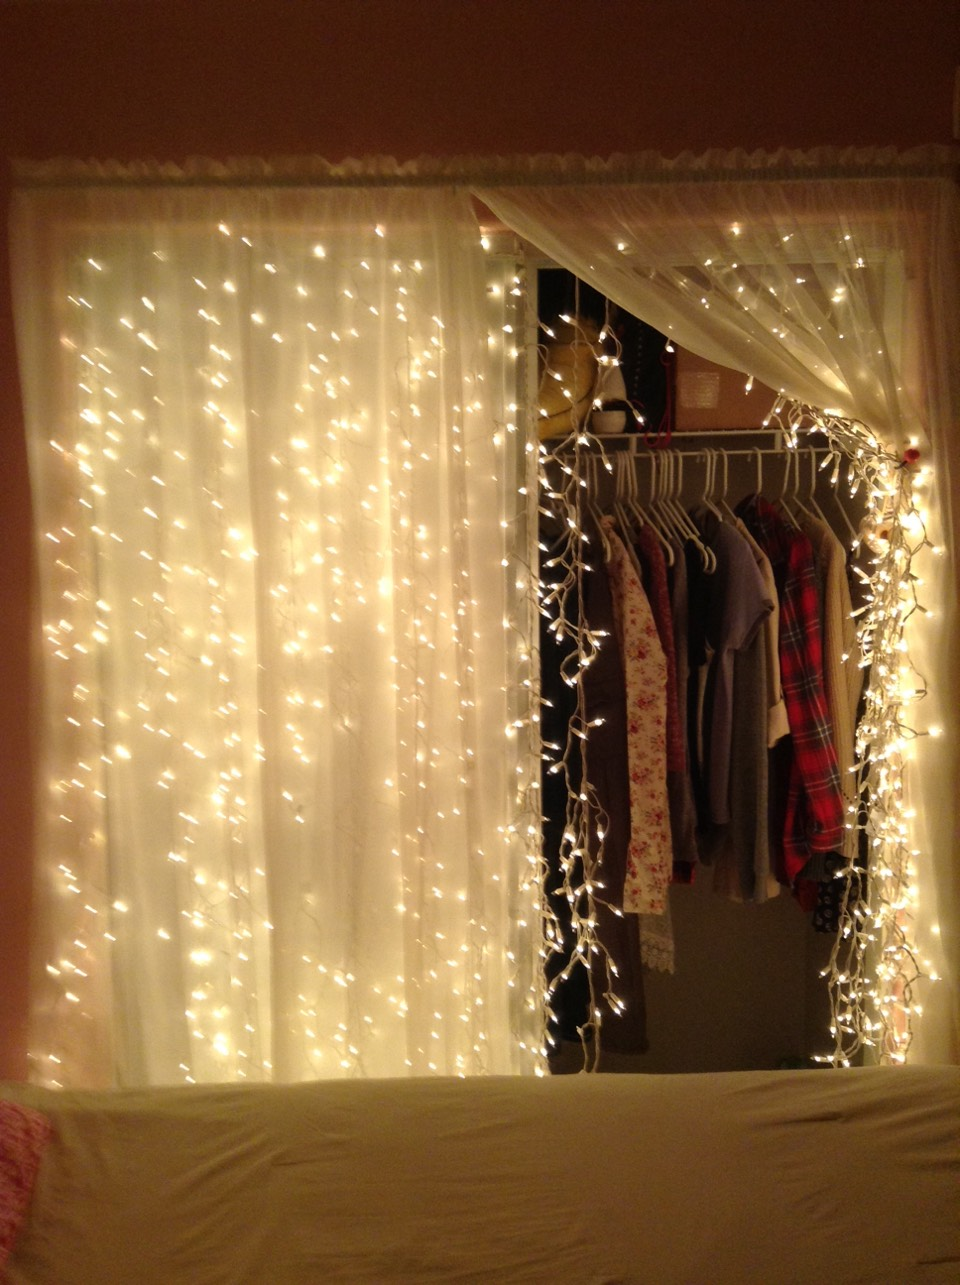 Try dangling Christmas lights from your closet to get that tumblr effect.